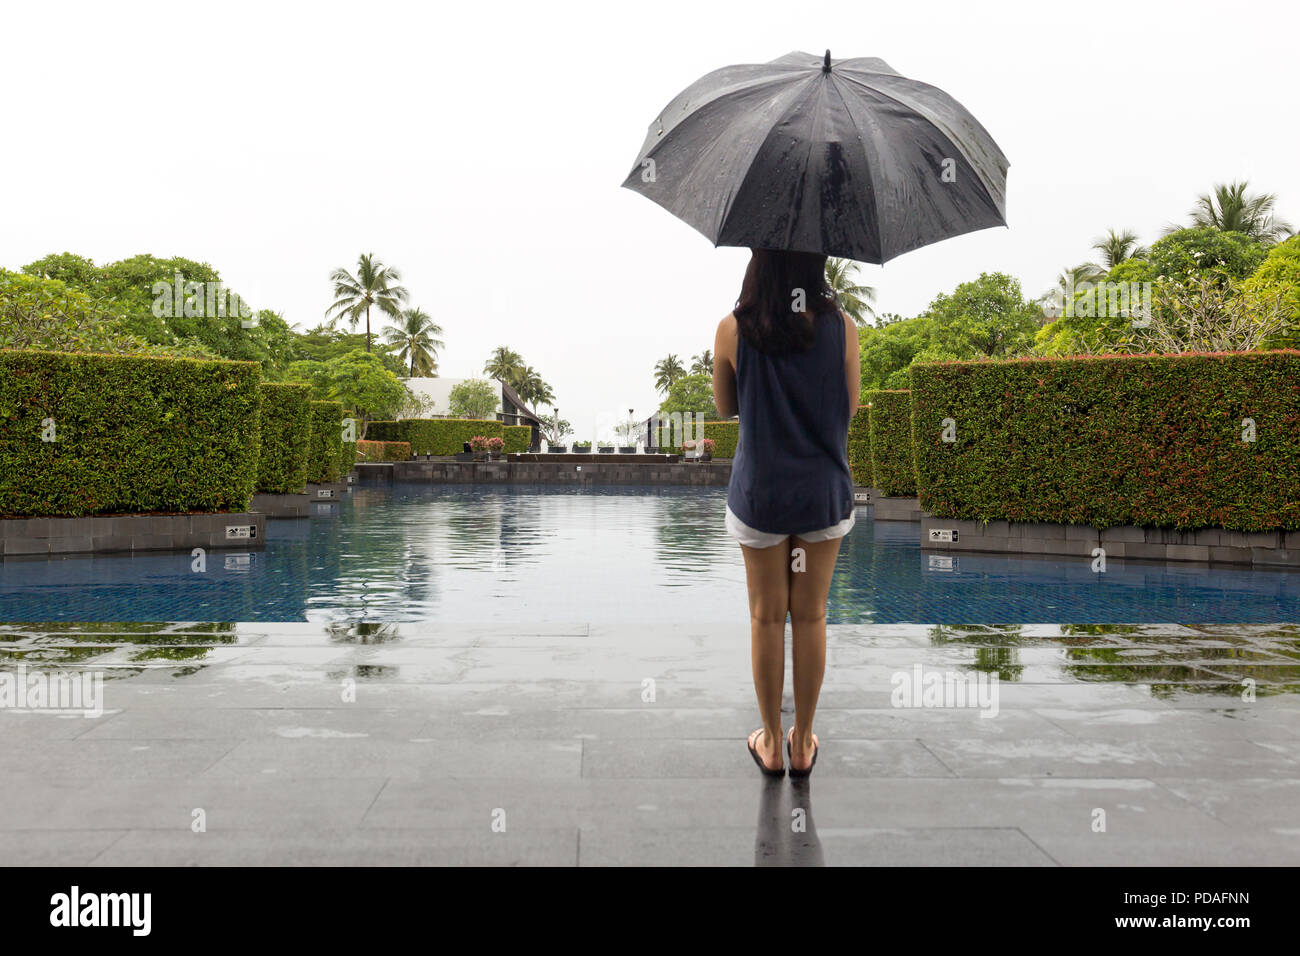 Woman with umbrella standing by swimming pool watching the rain  - Stock Image